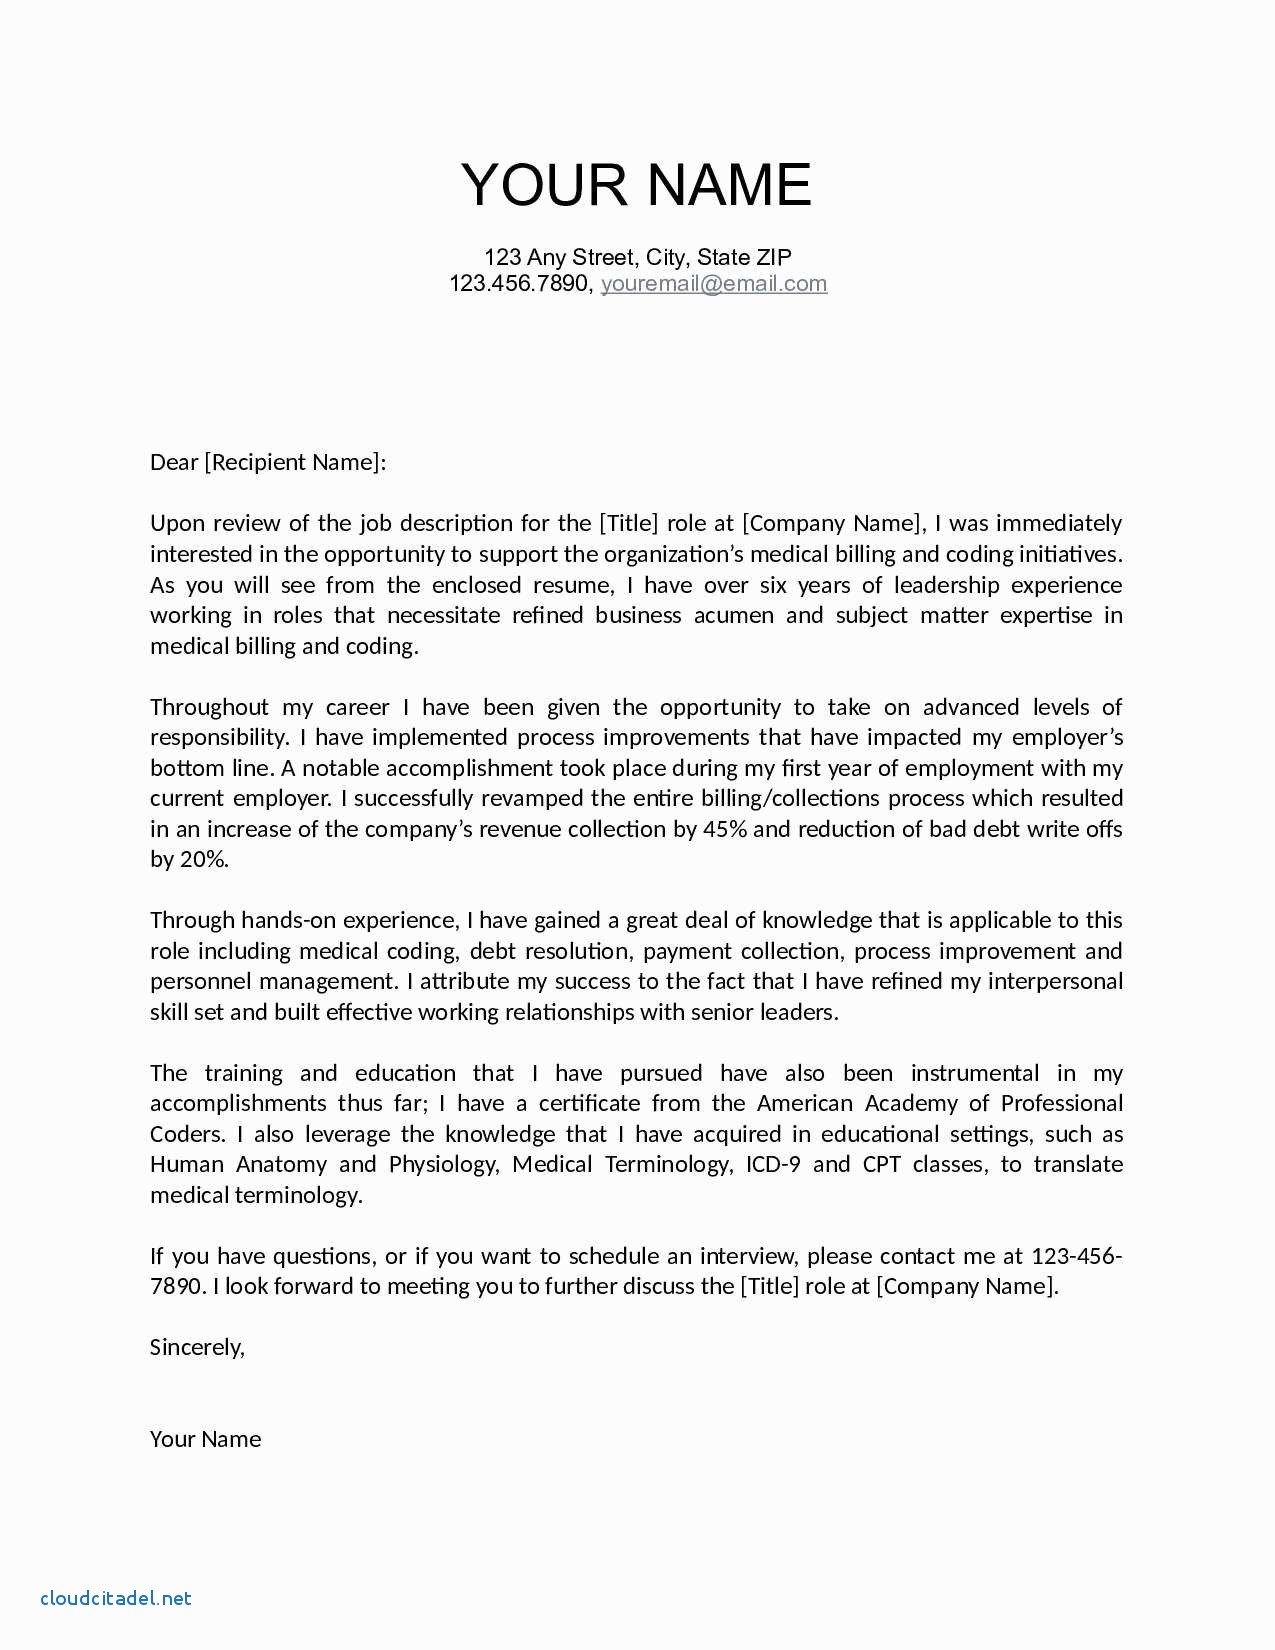 Cover Letter Template for Teenager - Beautiful Professional Job Application Letter Template